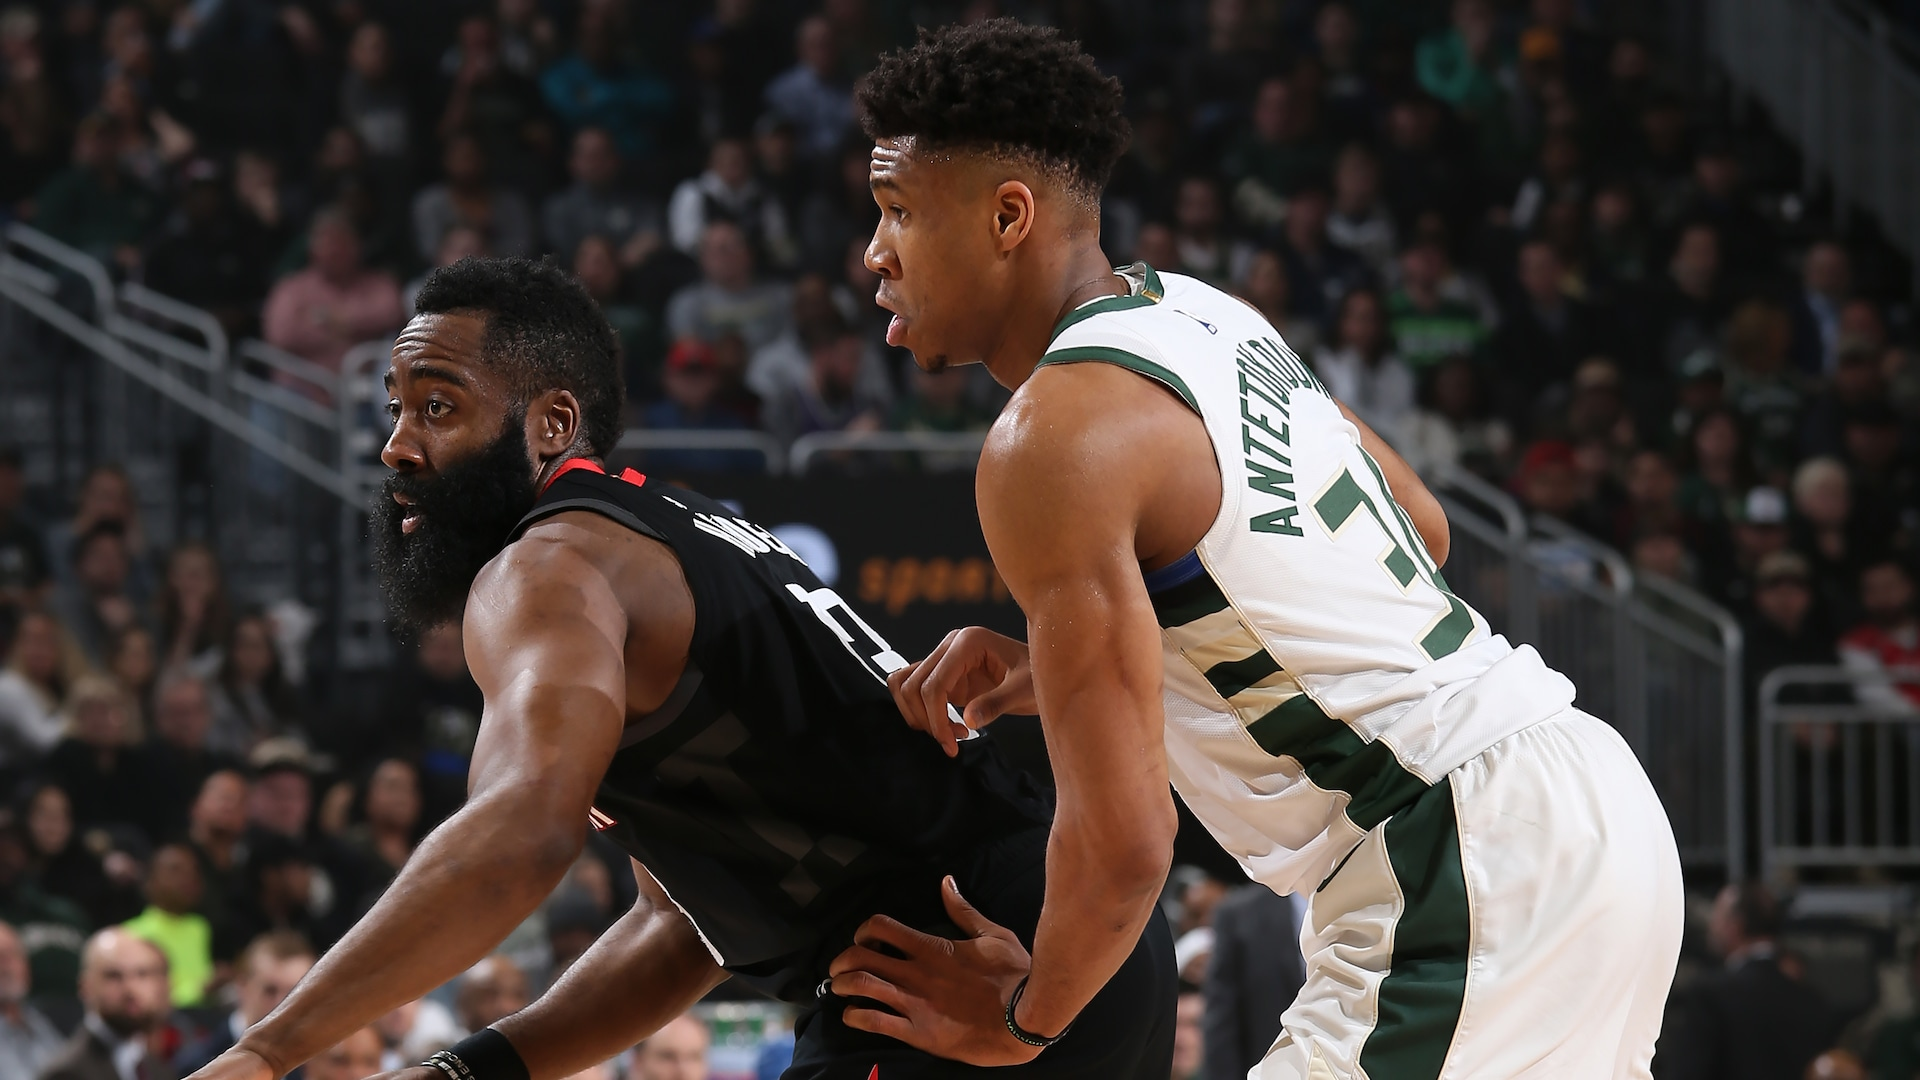 Latest, best quotes from NBA stars: Giannis Antetokounmpo says James Harden is toughest player to guard